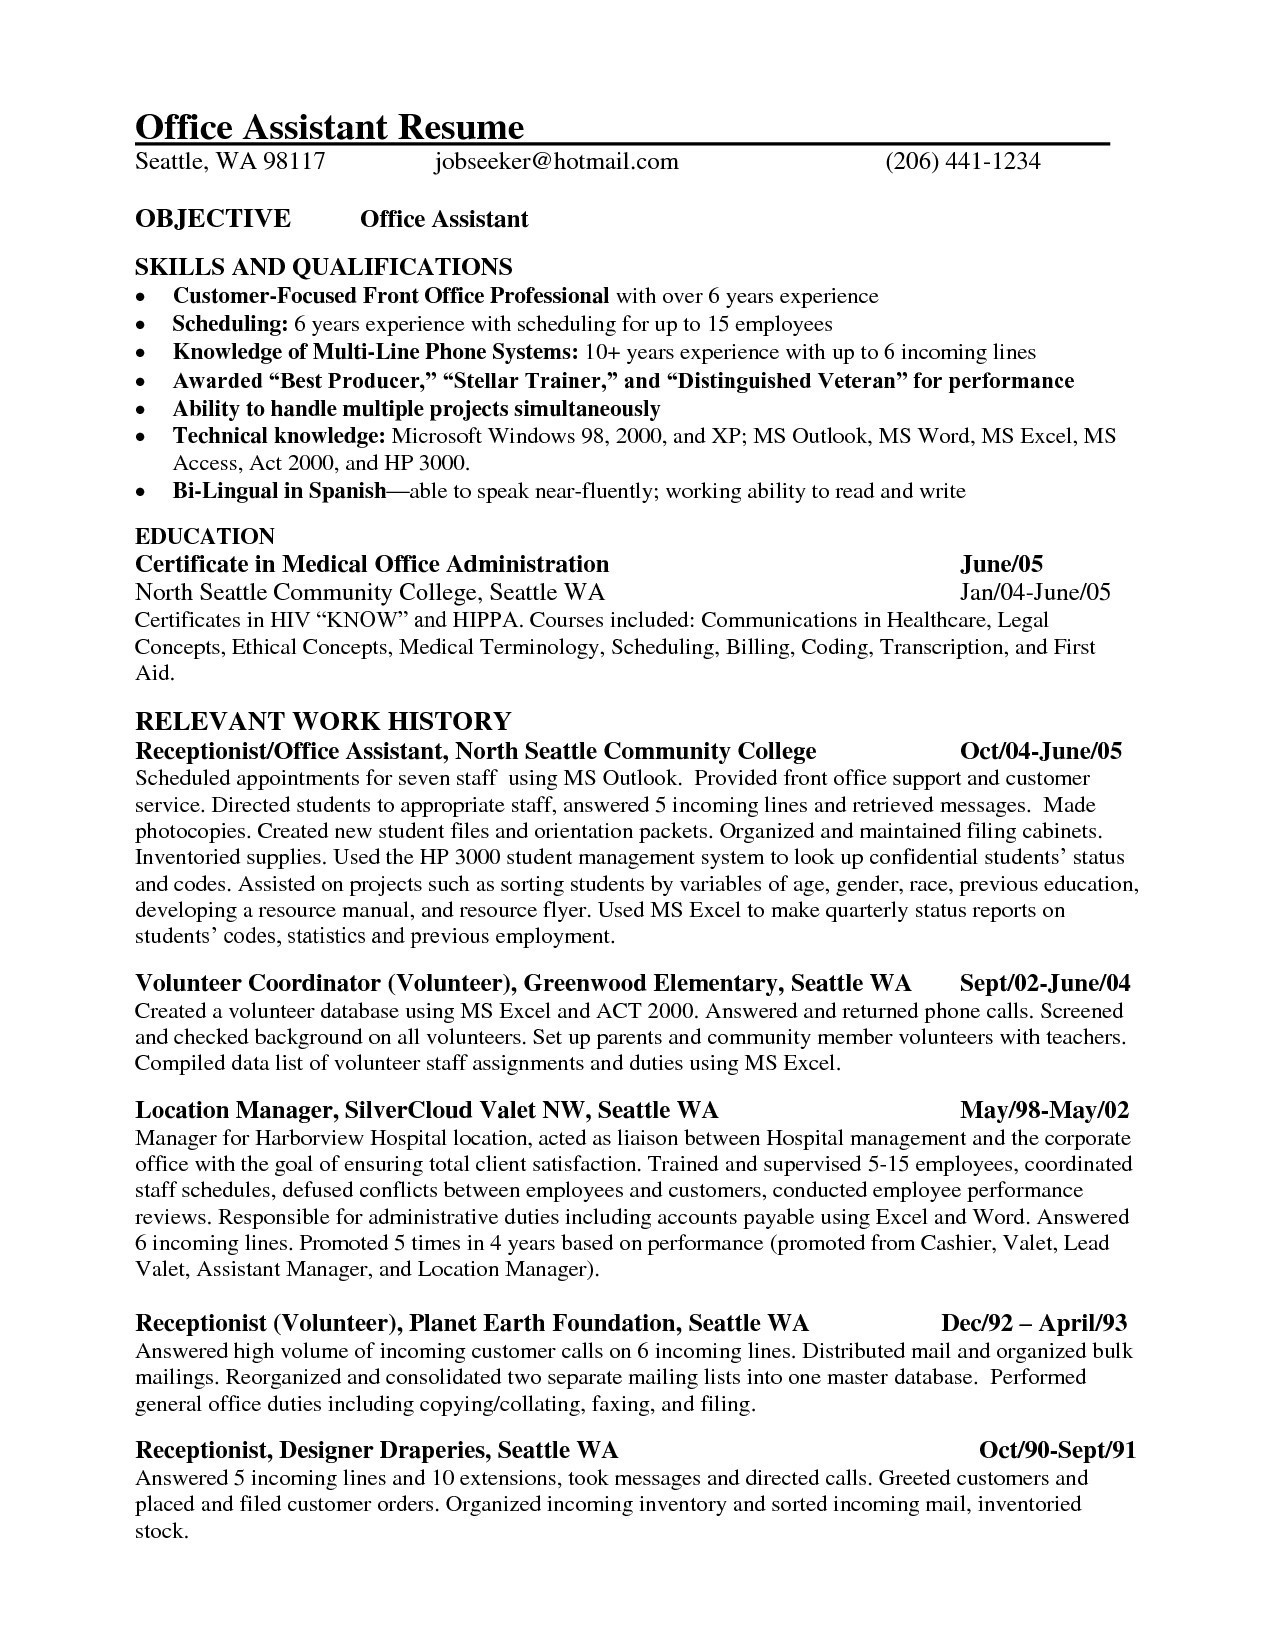 Medical Office Manager Resume Samples - Medical Fice Manager Resume Examples New Fice Manager Job